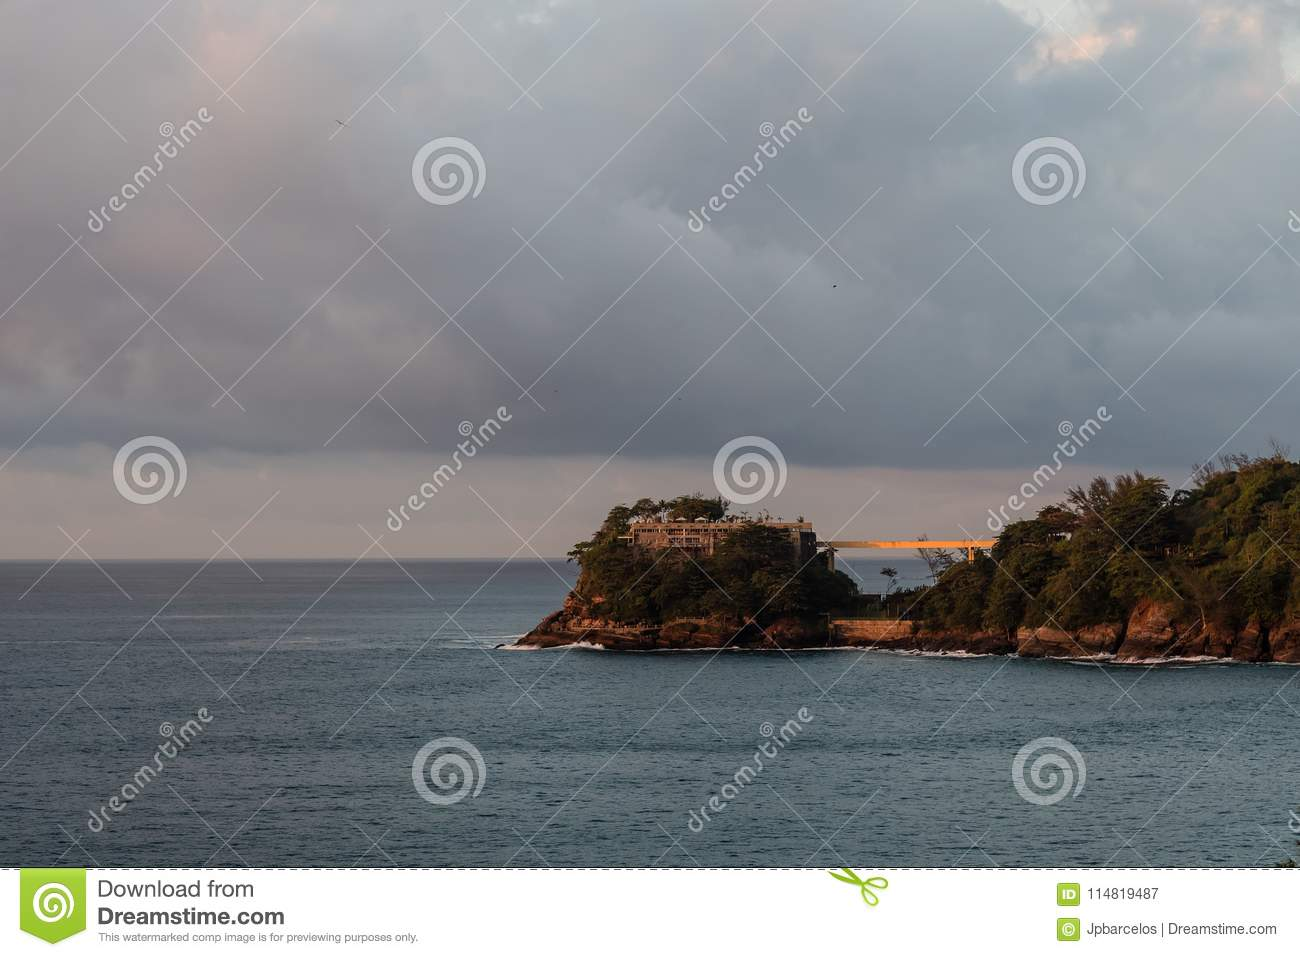 Costa Brava island, seen from Joa highway during sunrise, orange light in cloudy morning, Rio de Janeiro, brazil